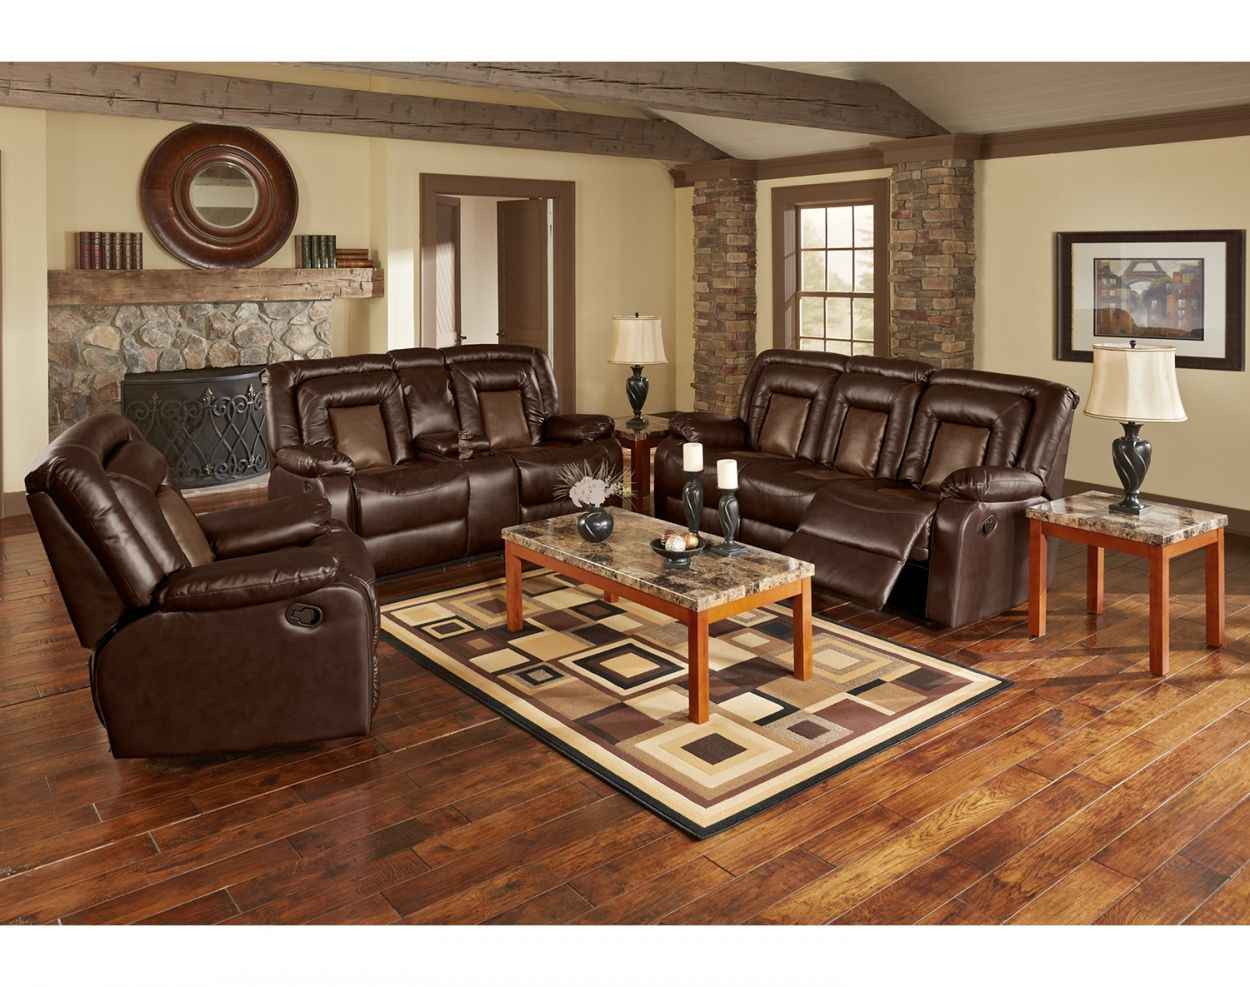 American home signature furniture best home furniture check more at http searchfororangecountyhomes